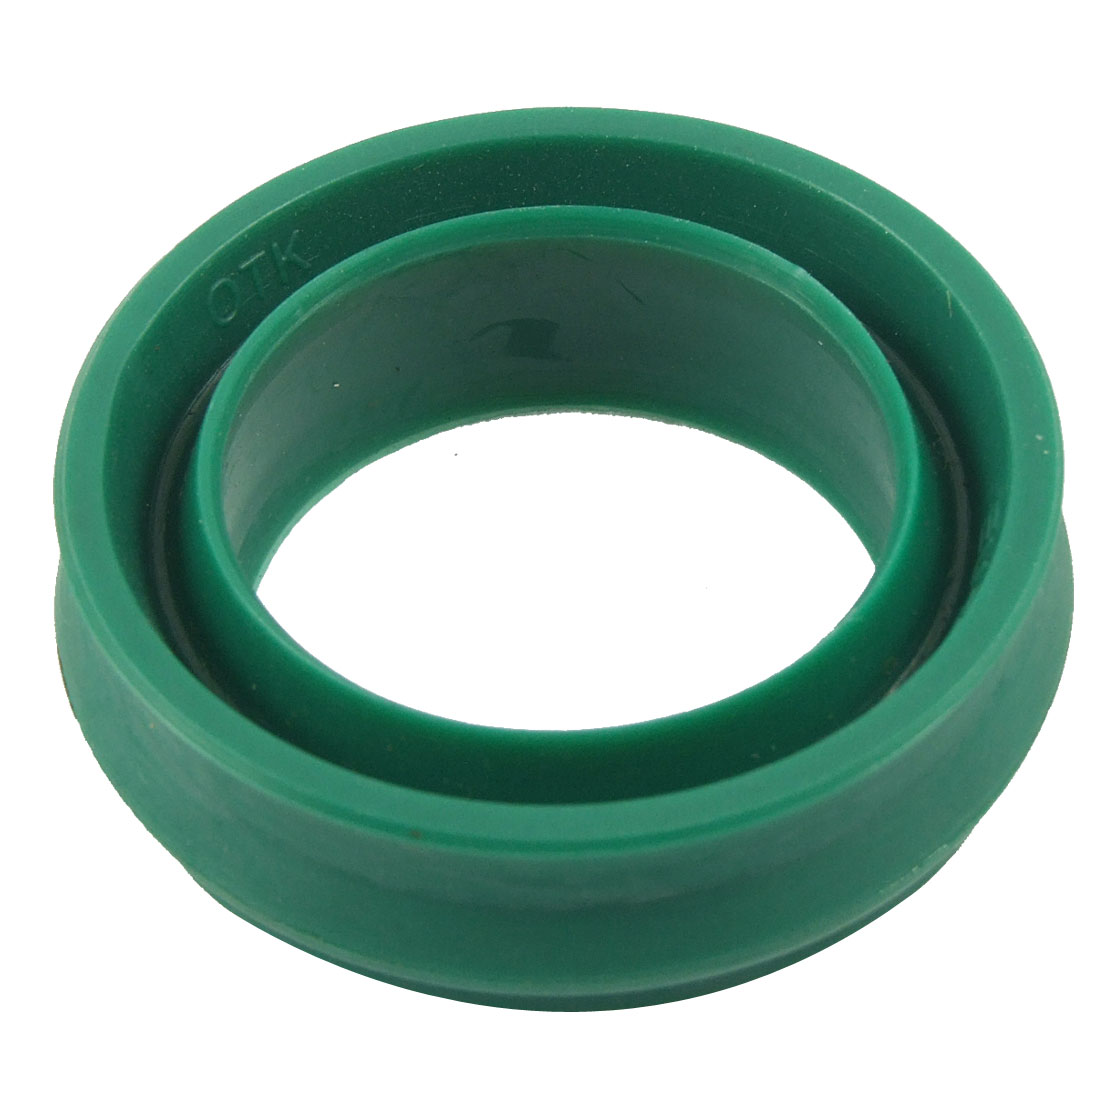 25x35x11.2mm Pneumatic Cylinder PU Oil Seal Gasket for Rod